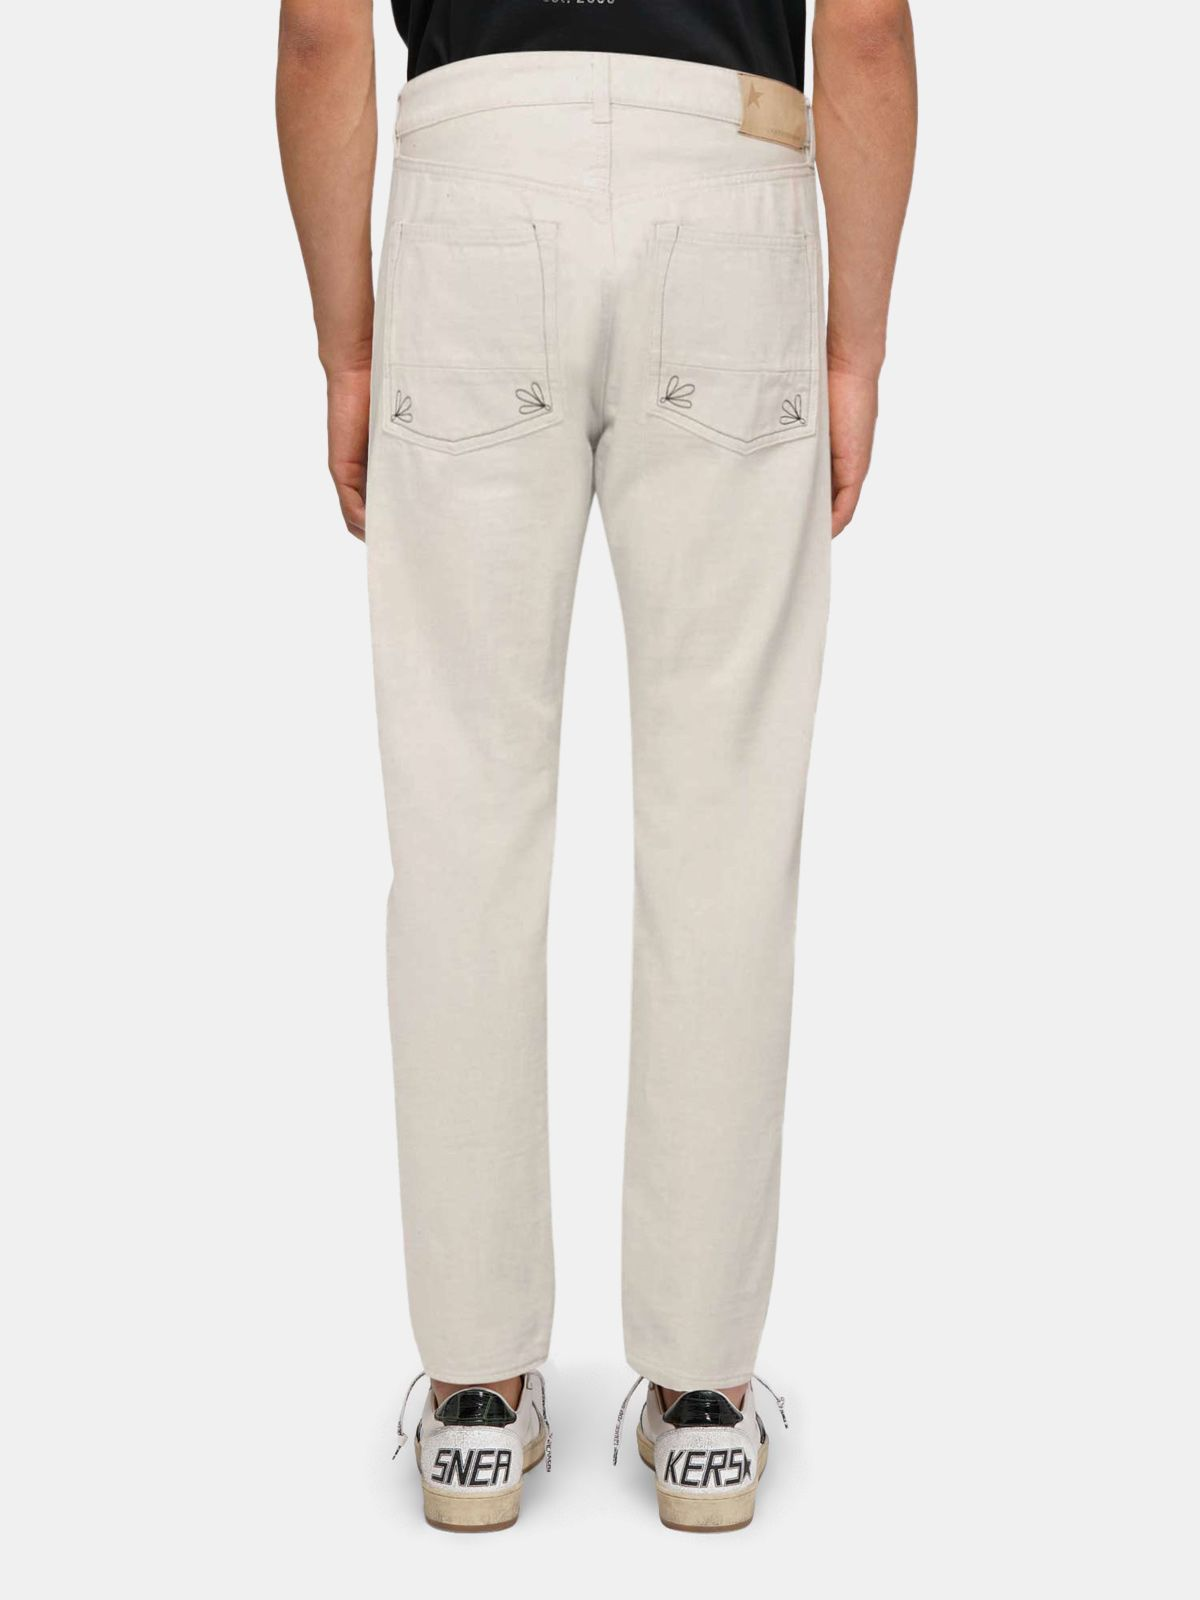 Golden Goose - White UP jeans in cotton bull in